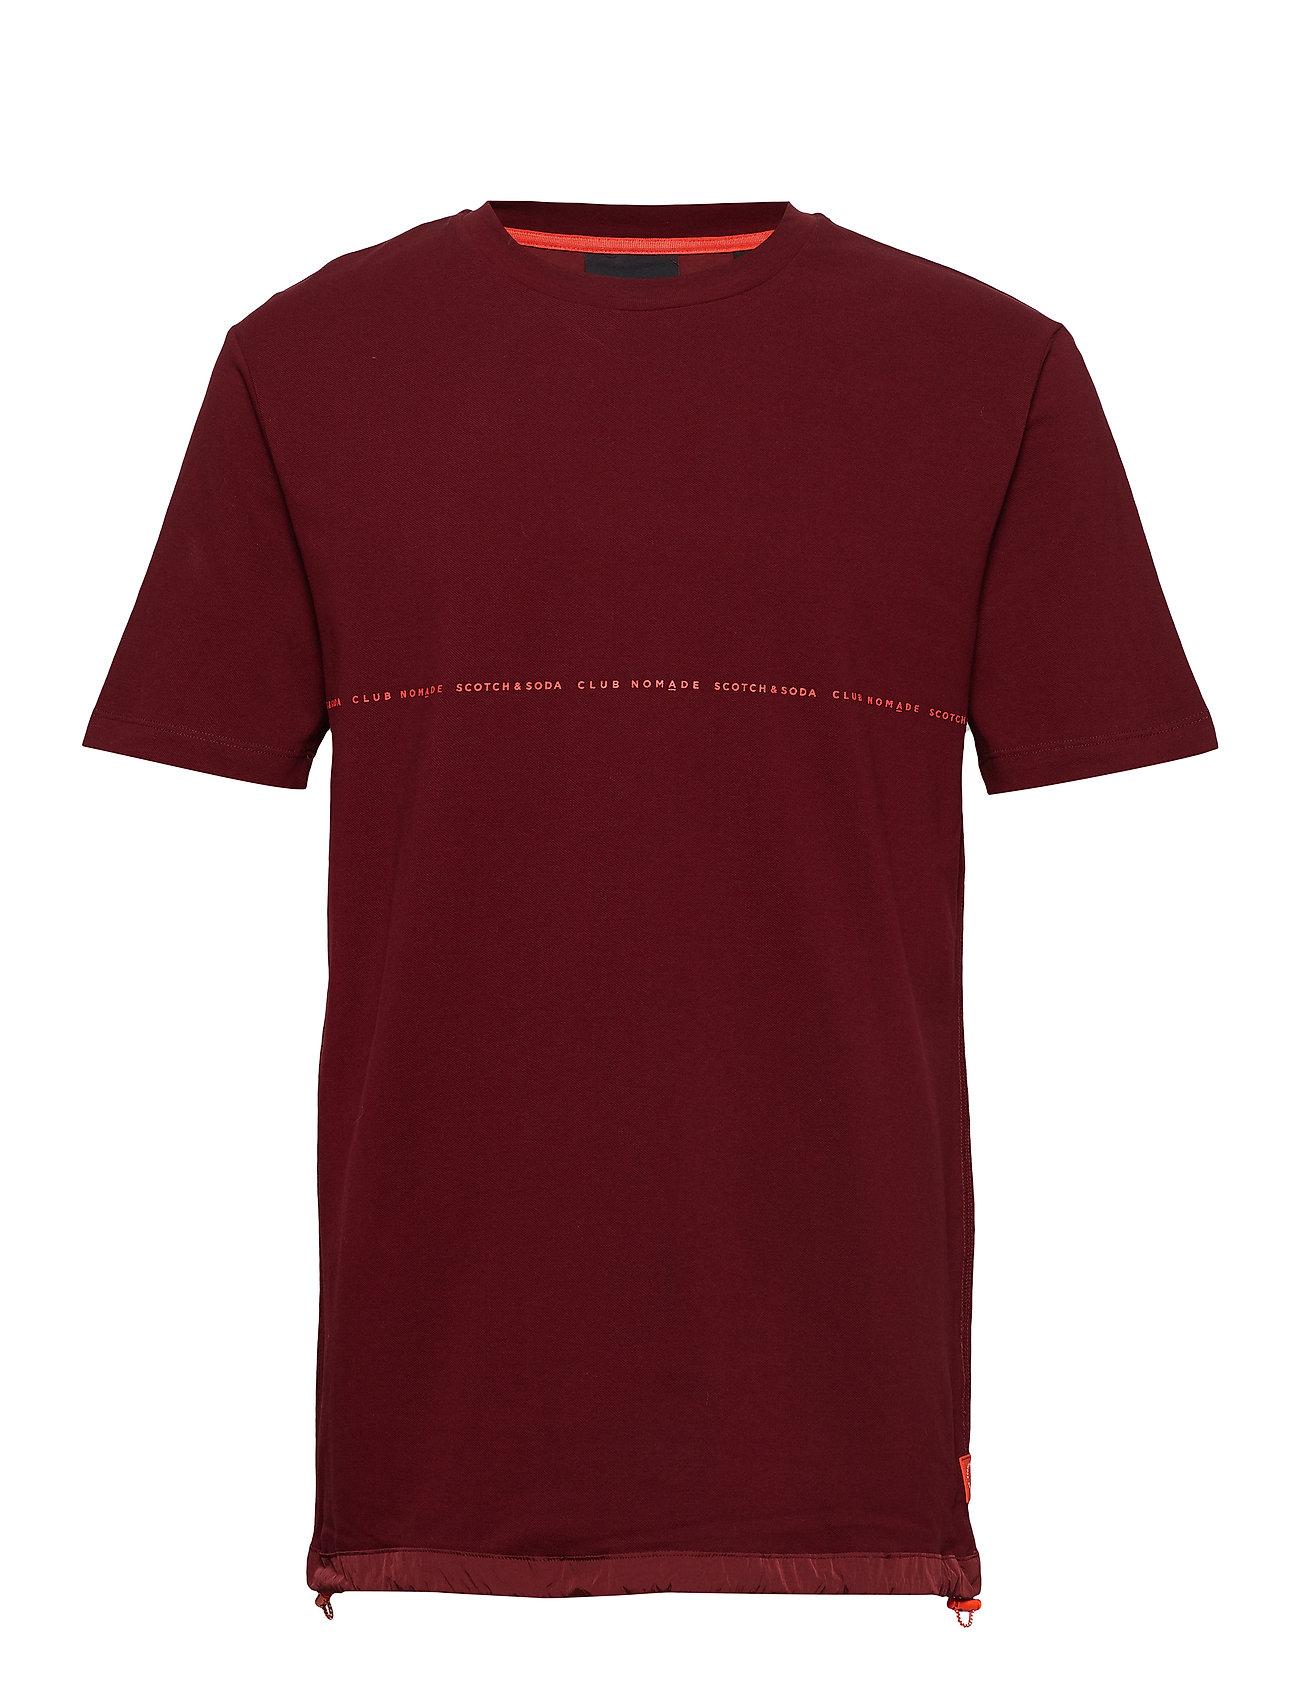 Scotch & Soda Club Nomade signature pique tee in oversize fit - NOMADE RED